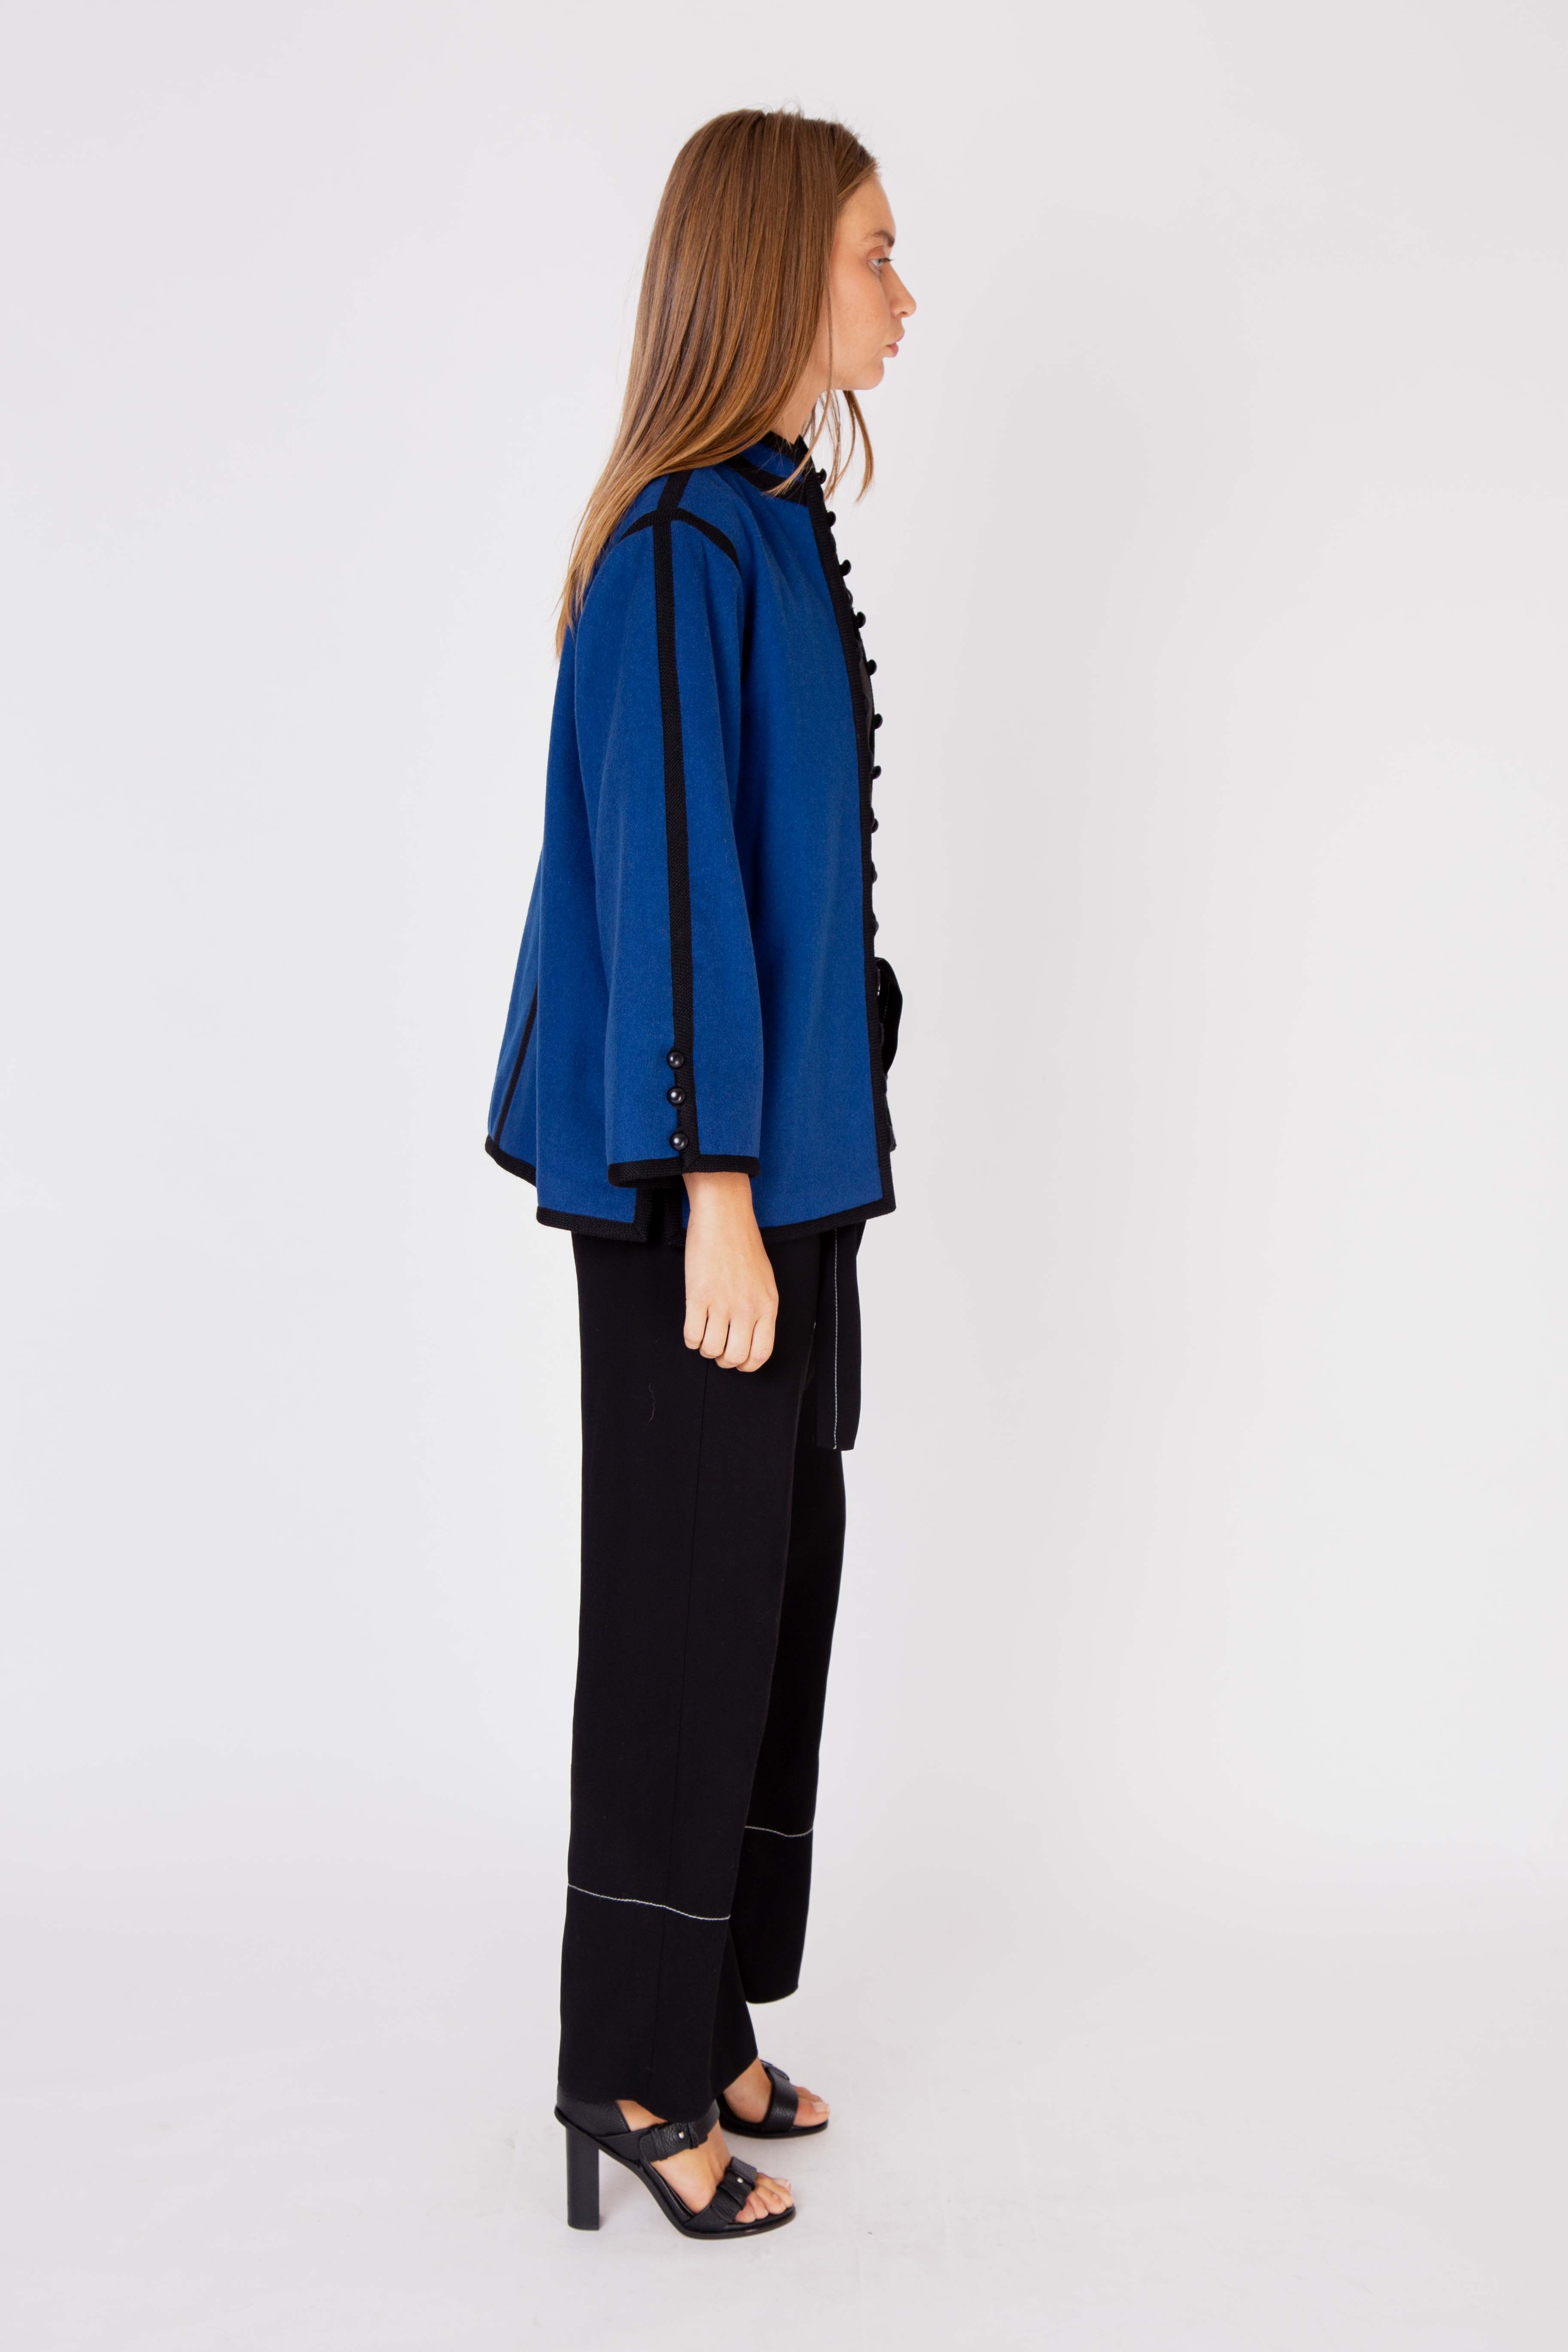 Yves Saint Laurent<br>1976 blue wool collarless jacket